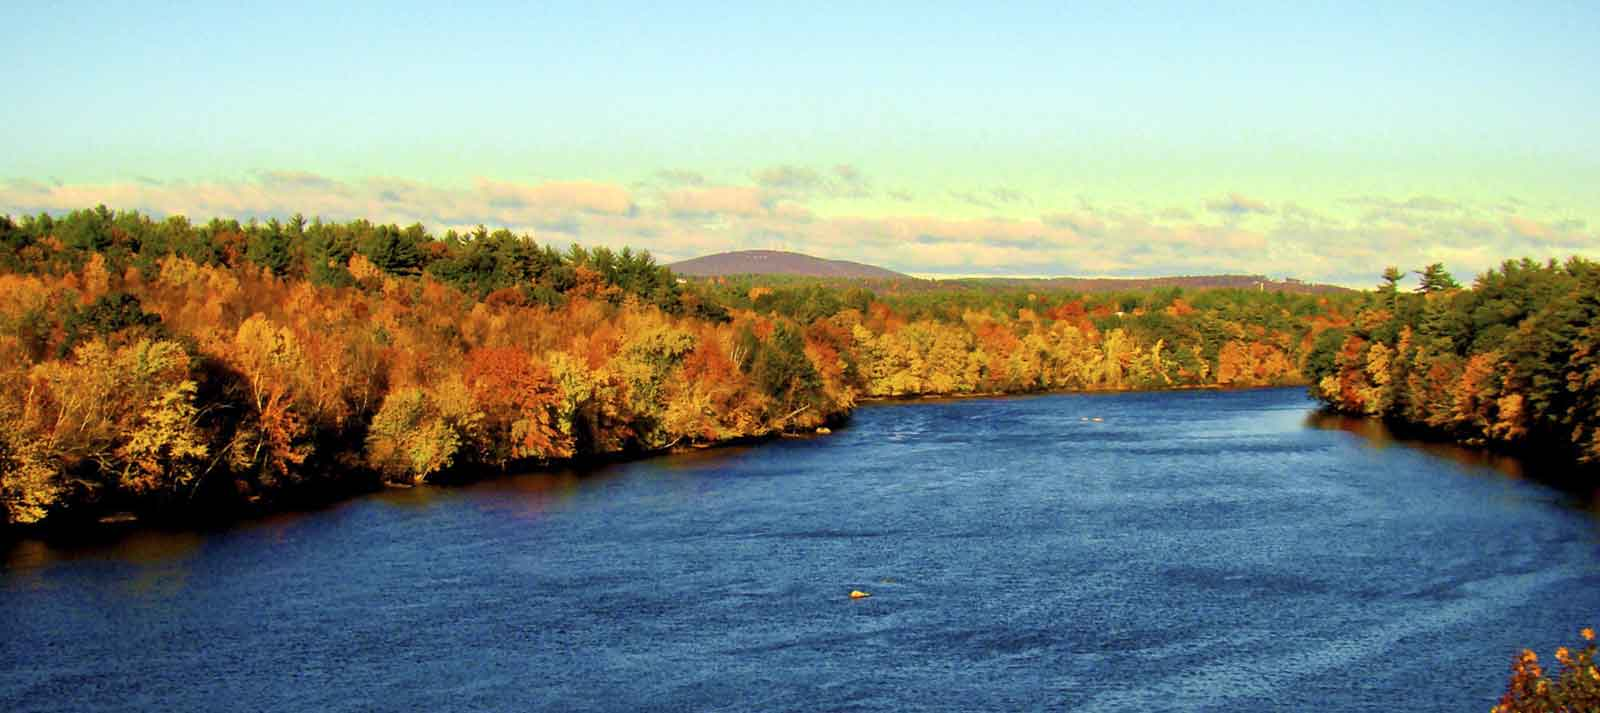 Merrimack River | Merrimack River Watershed Council